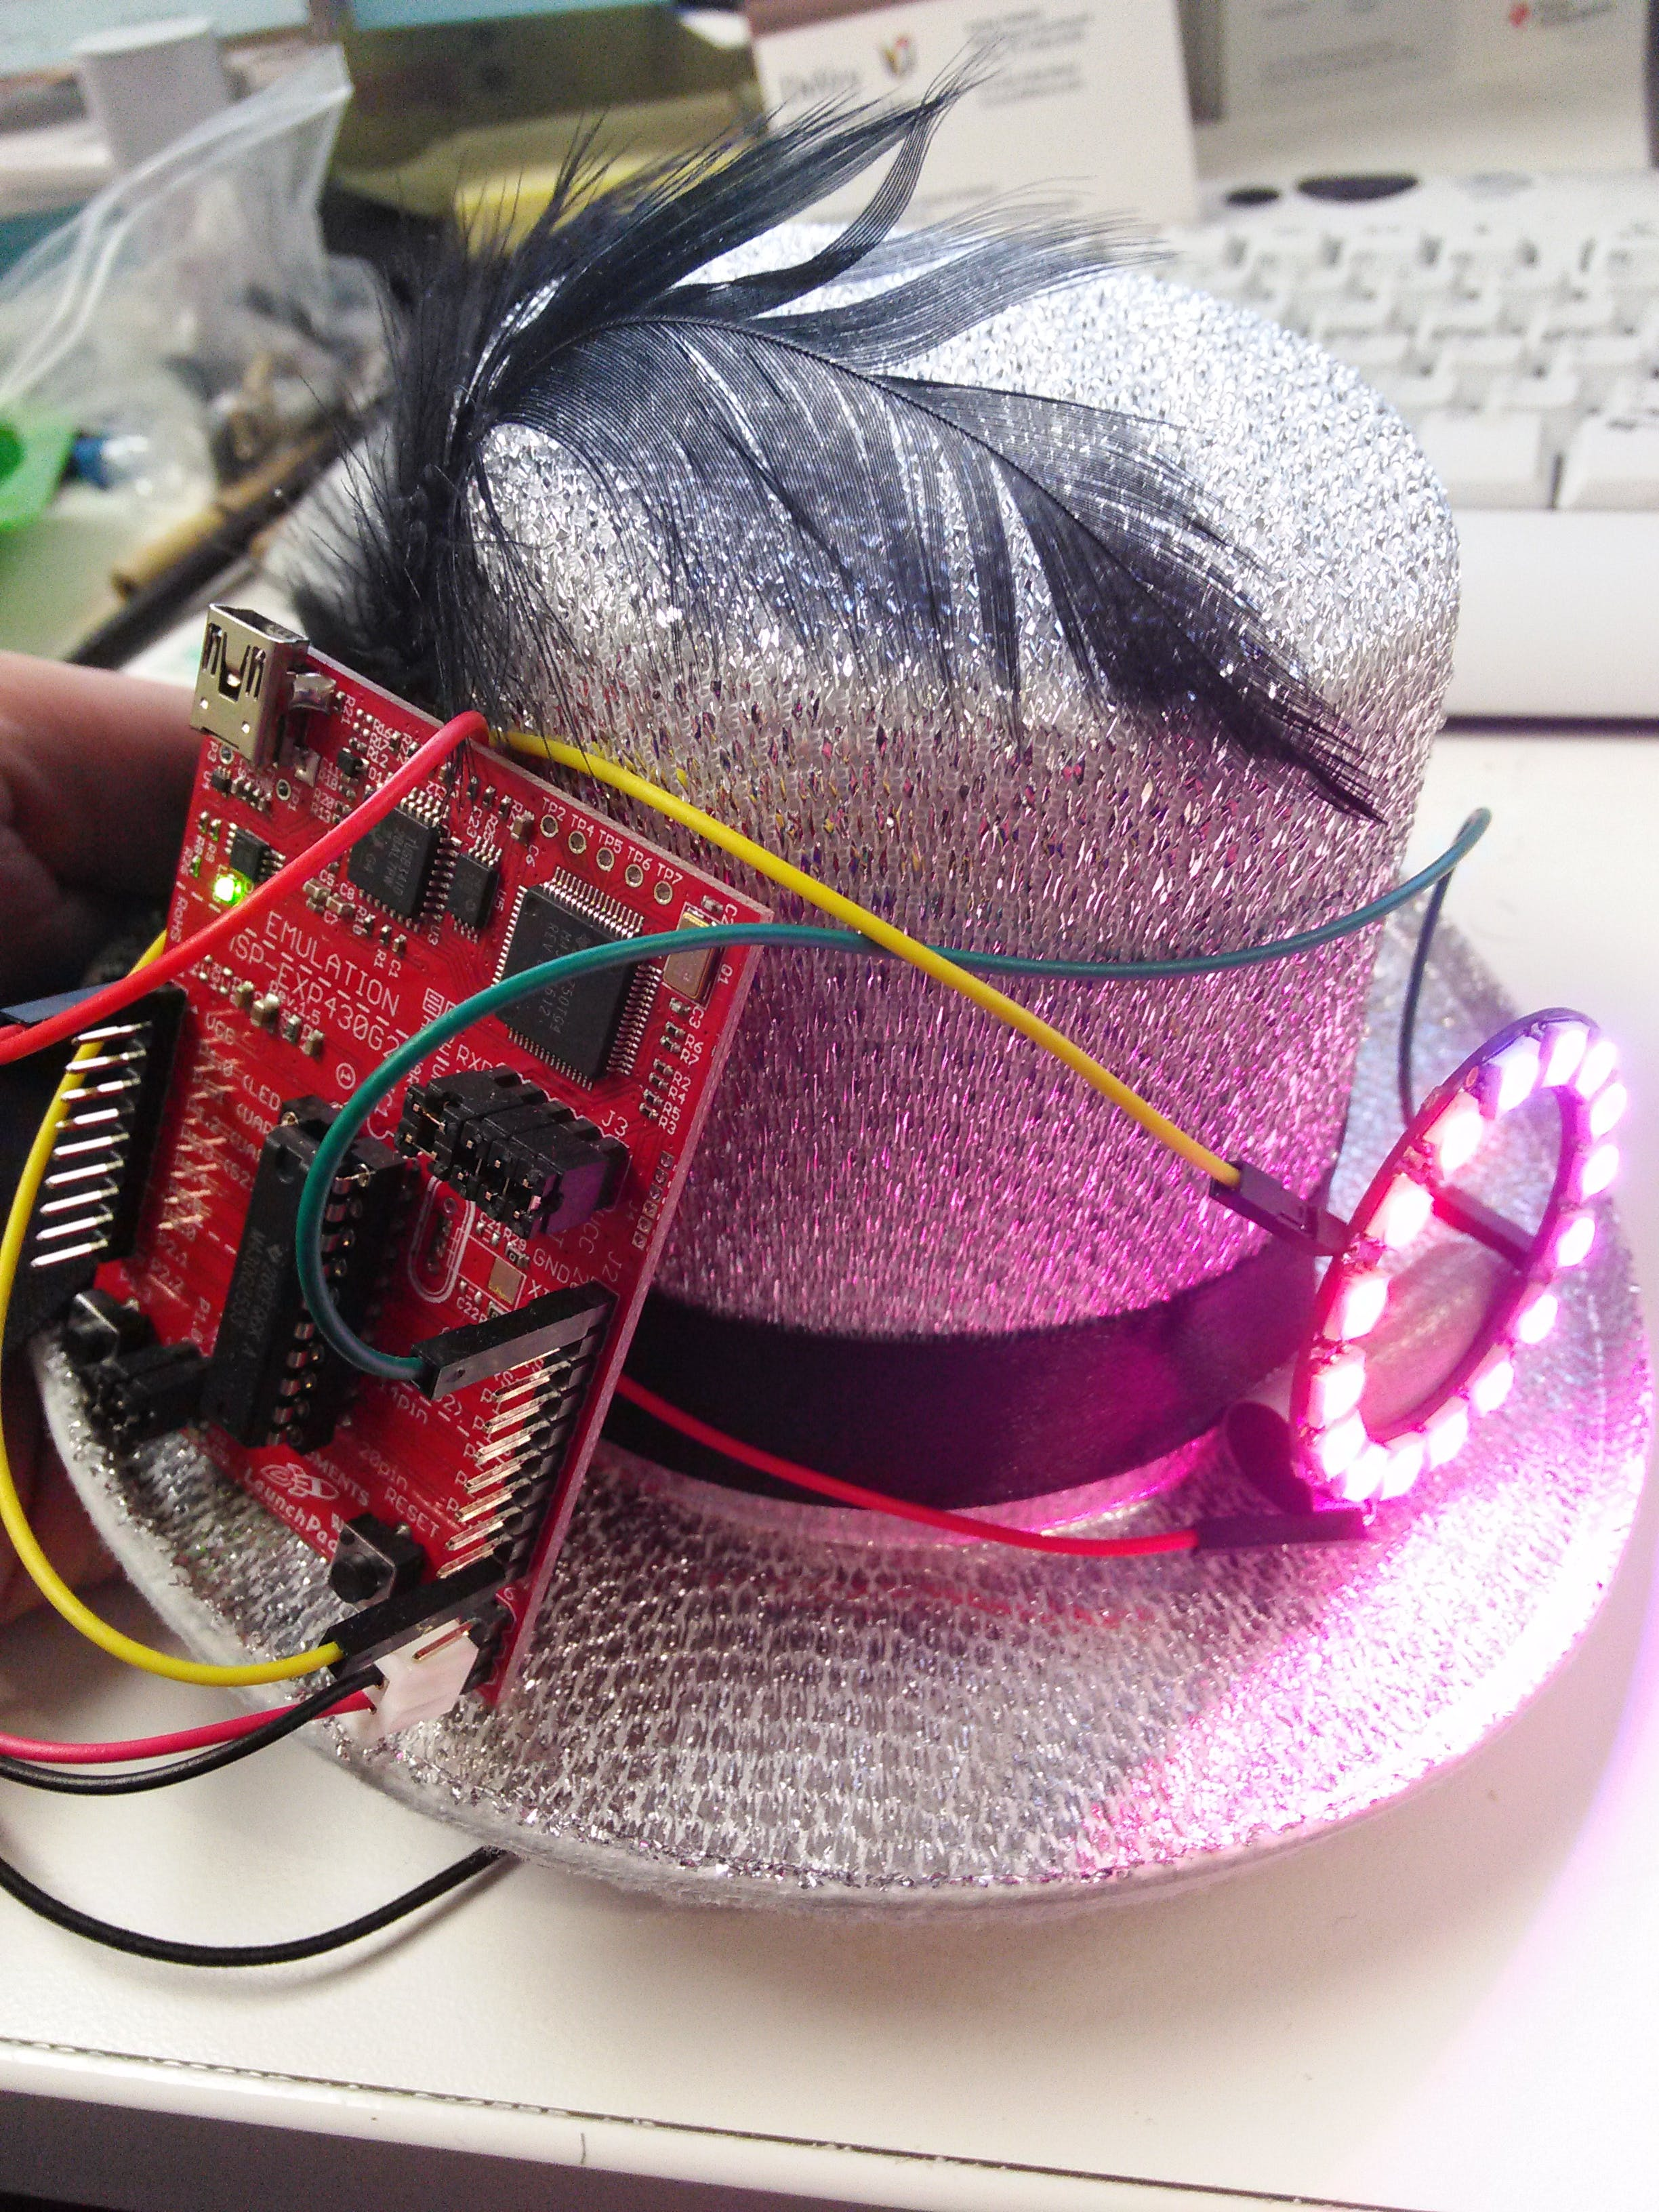 LED Hat with MSP430 and Neopixels